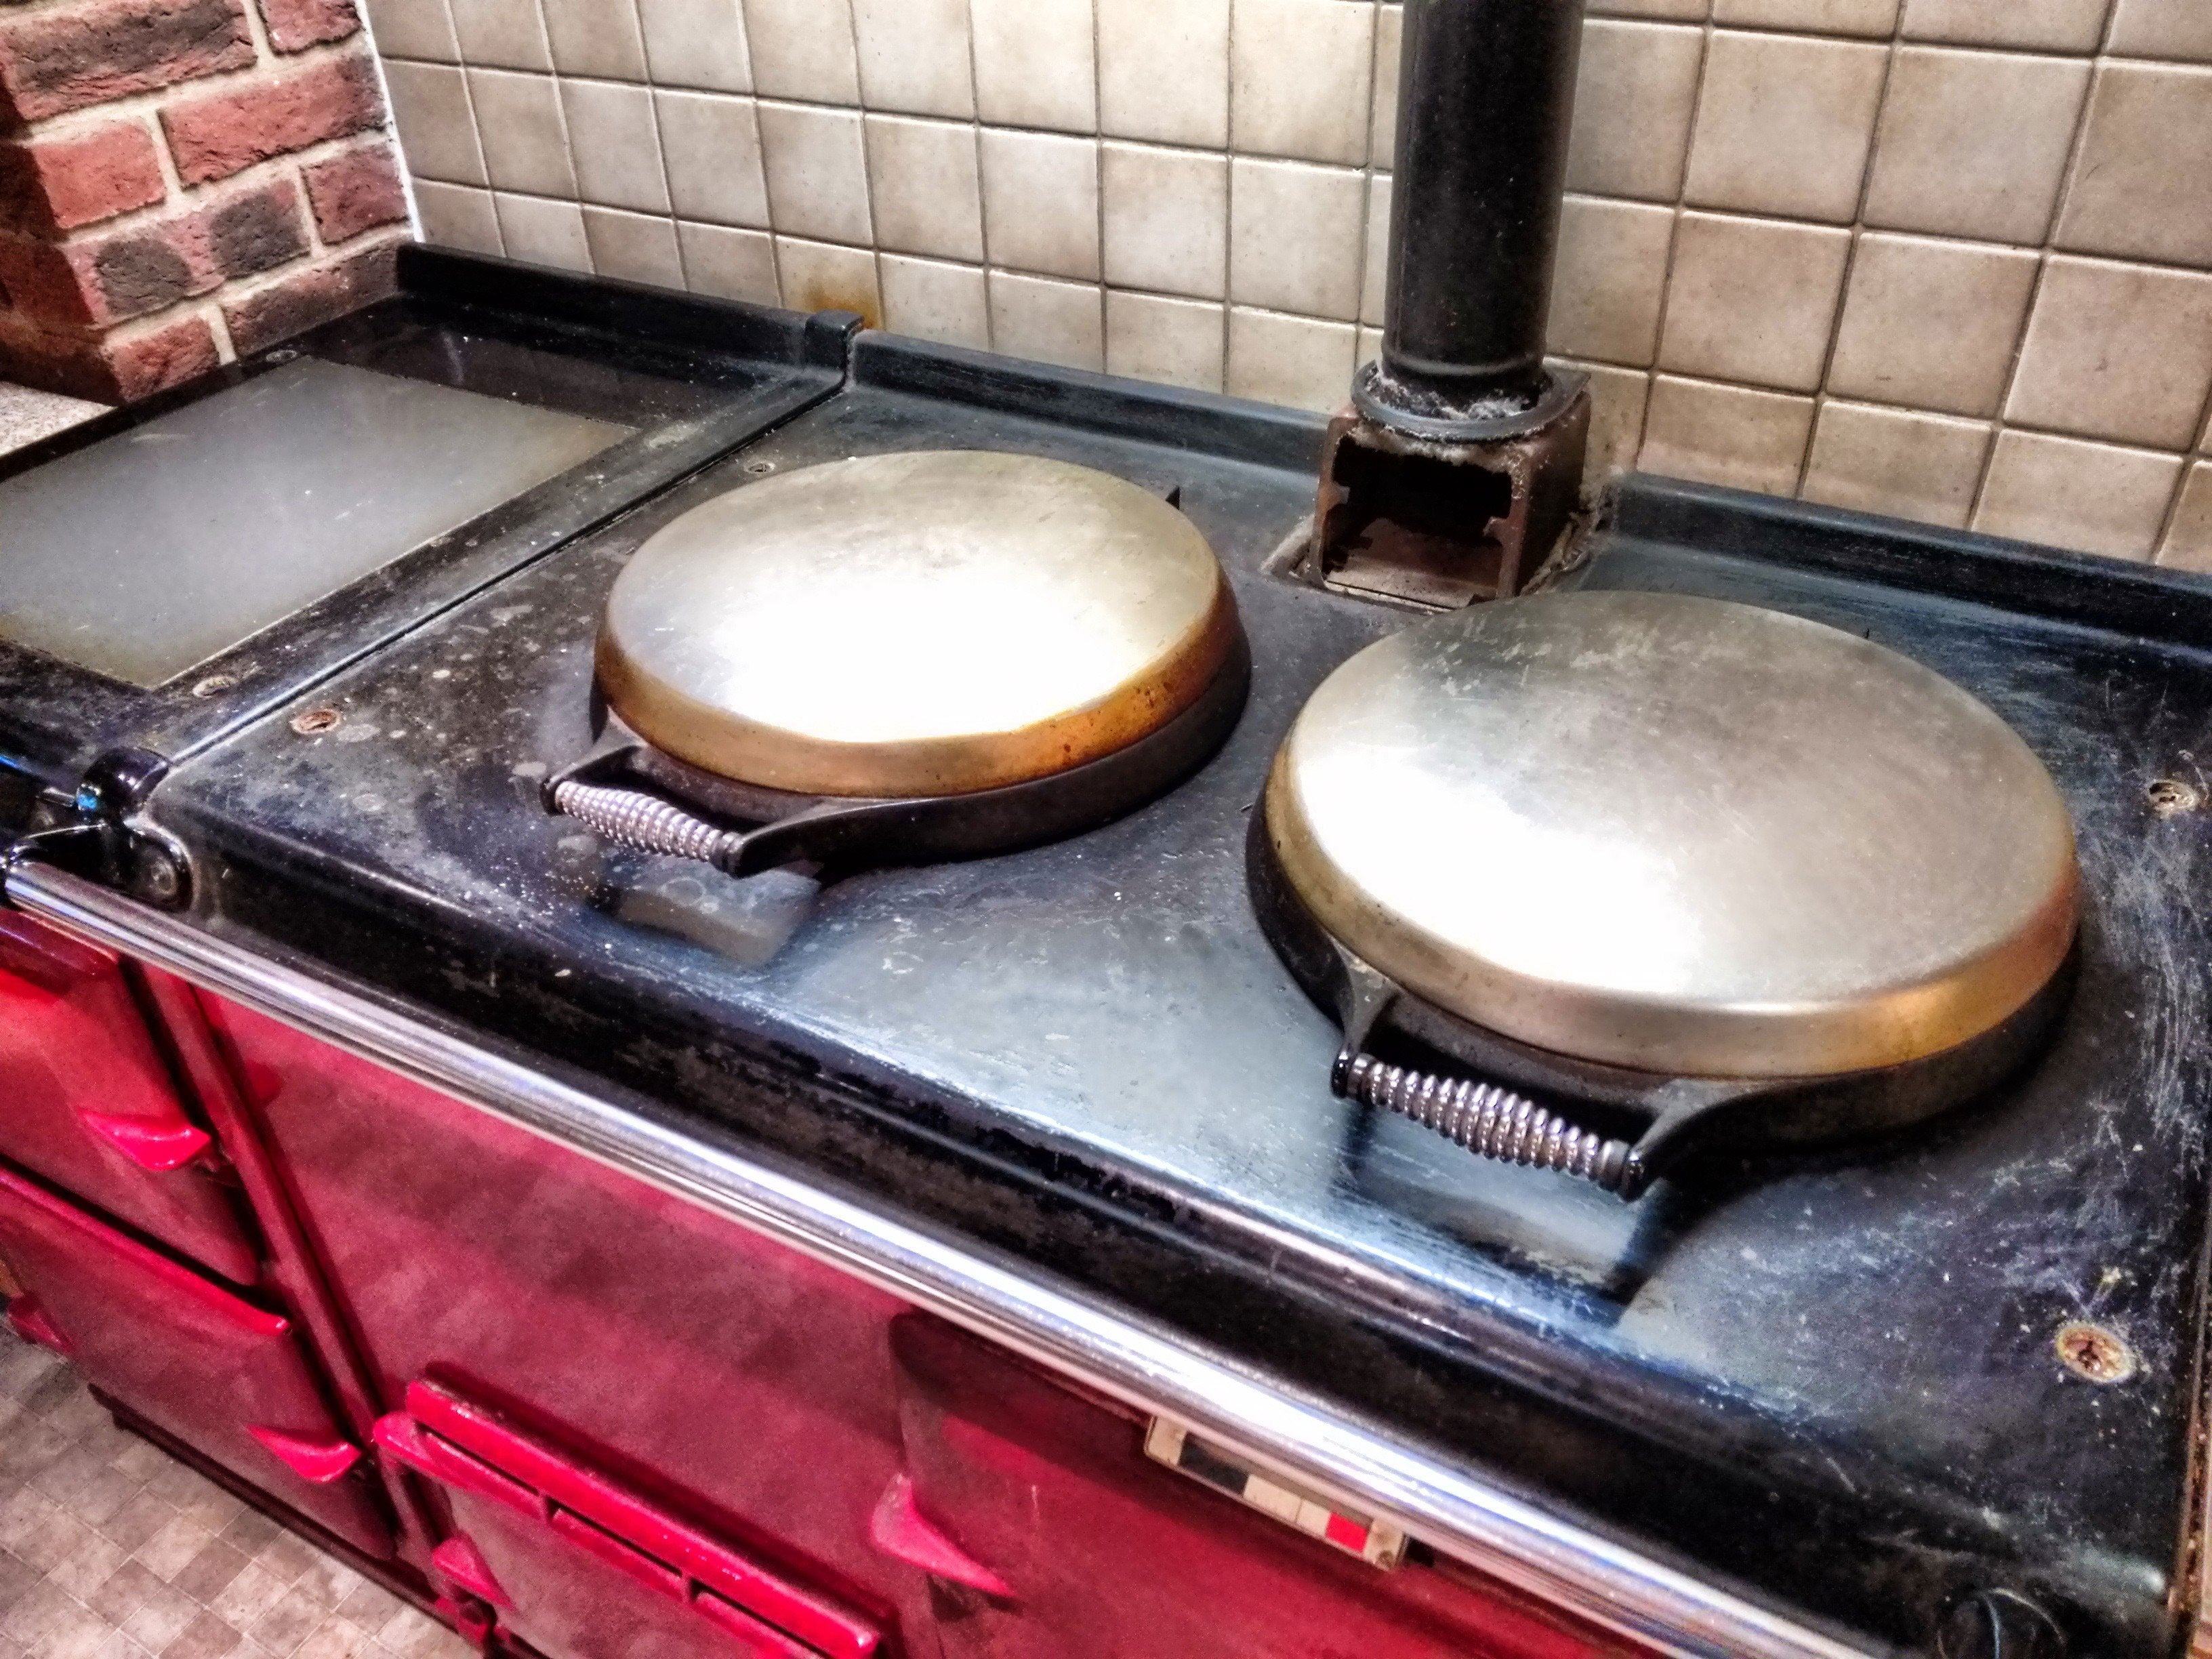 re-enamel red aga range cooker